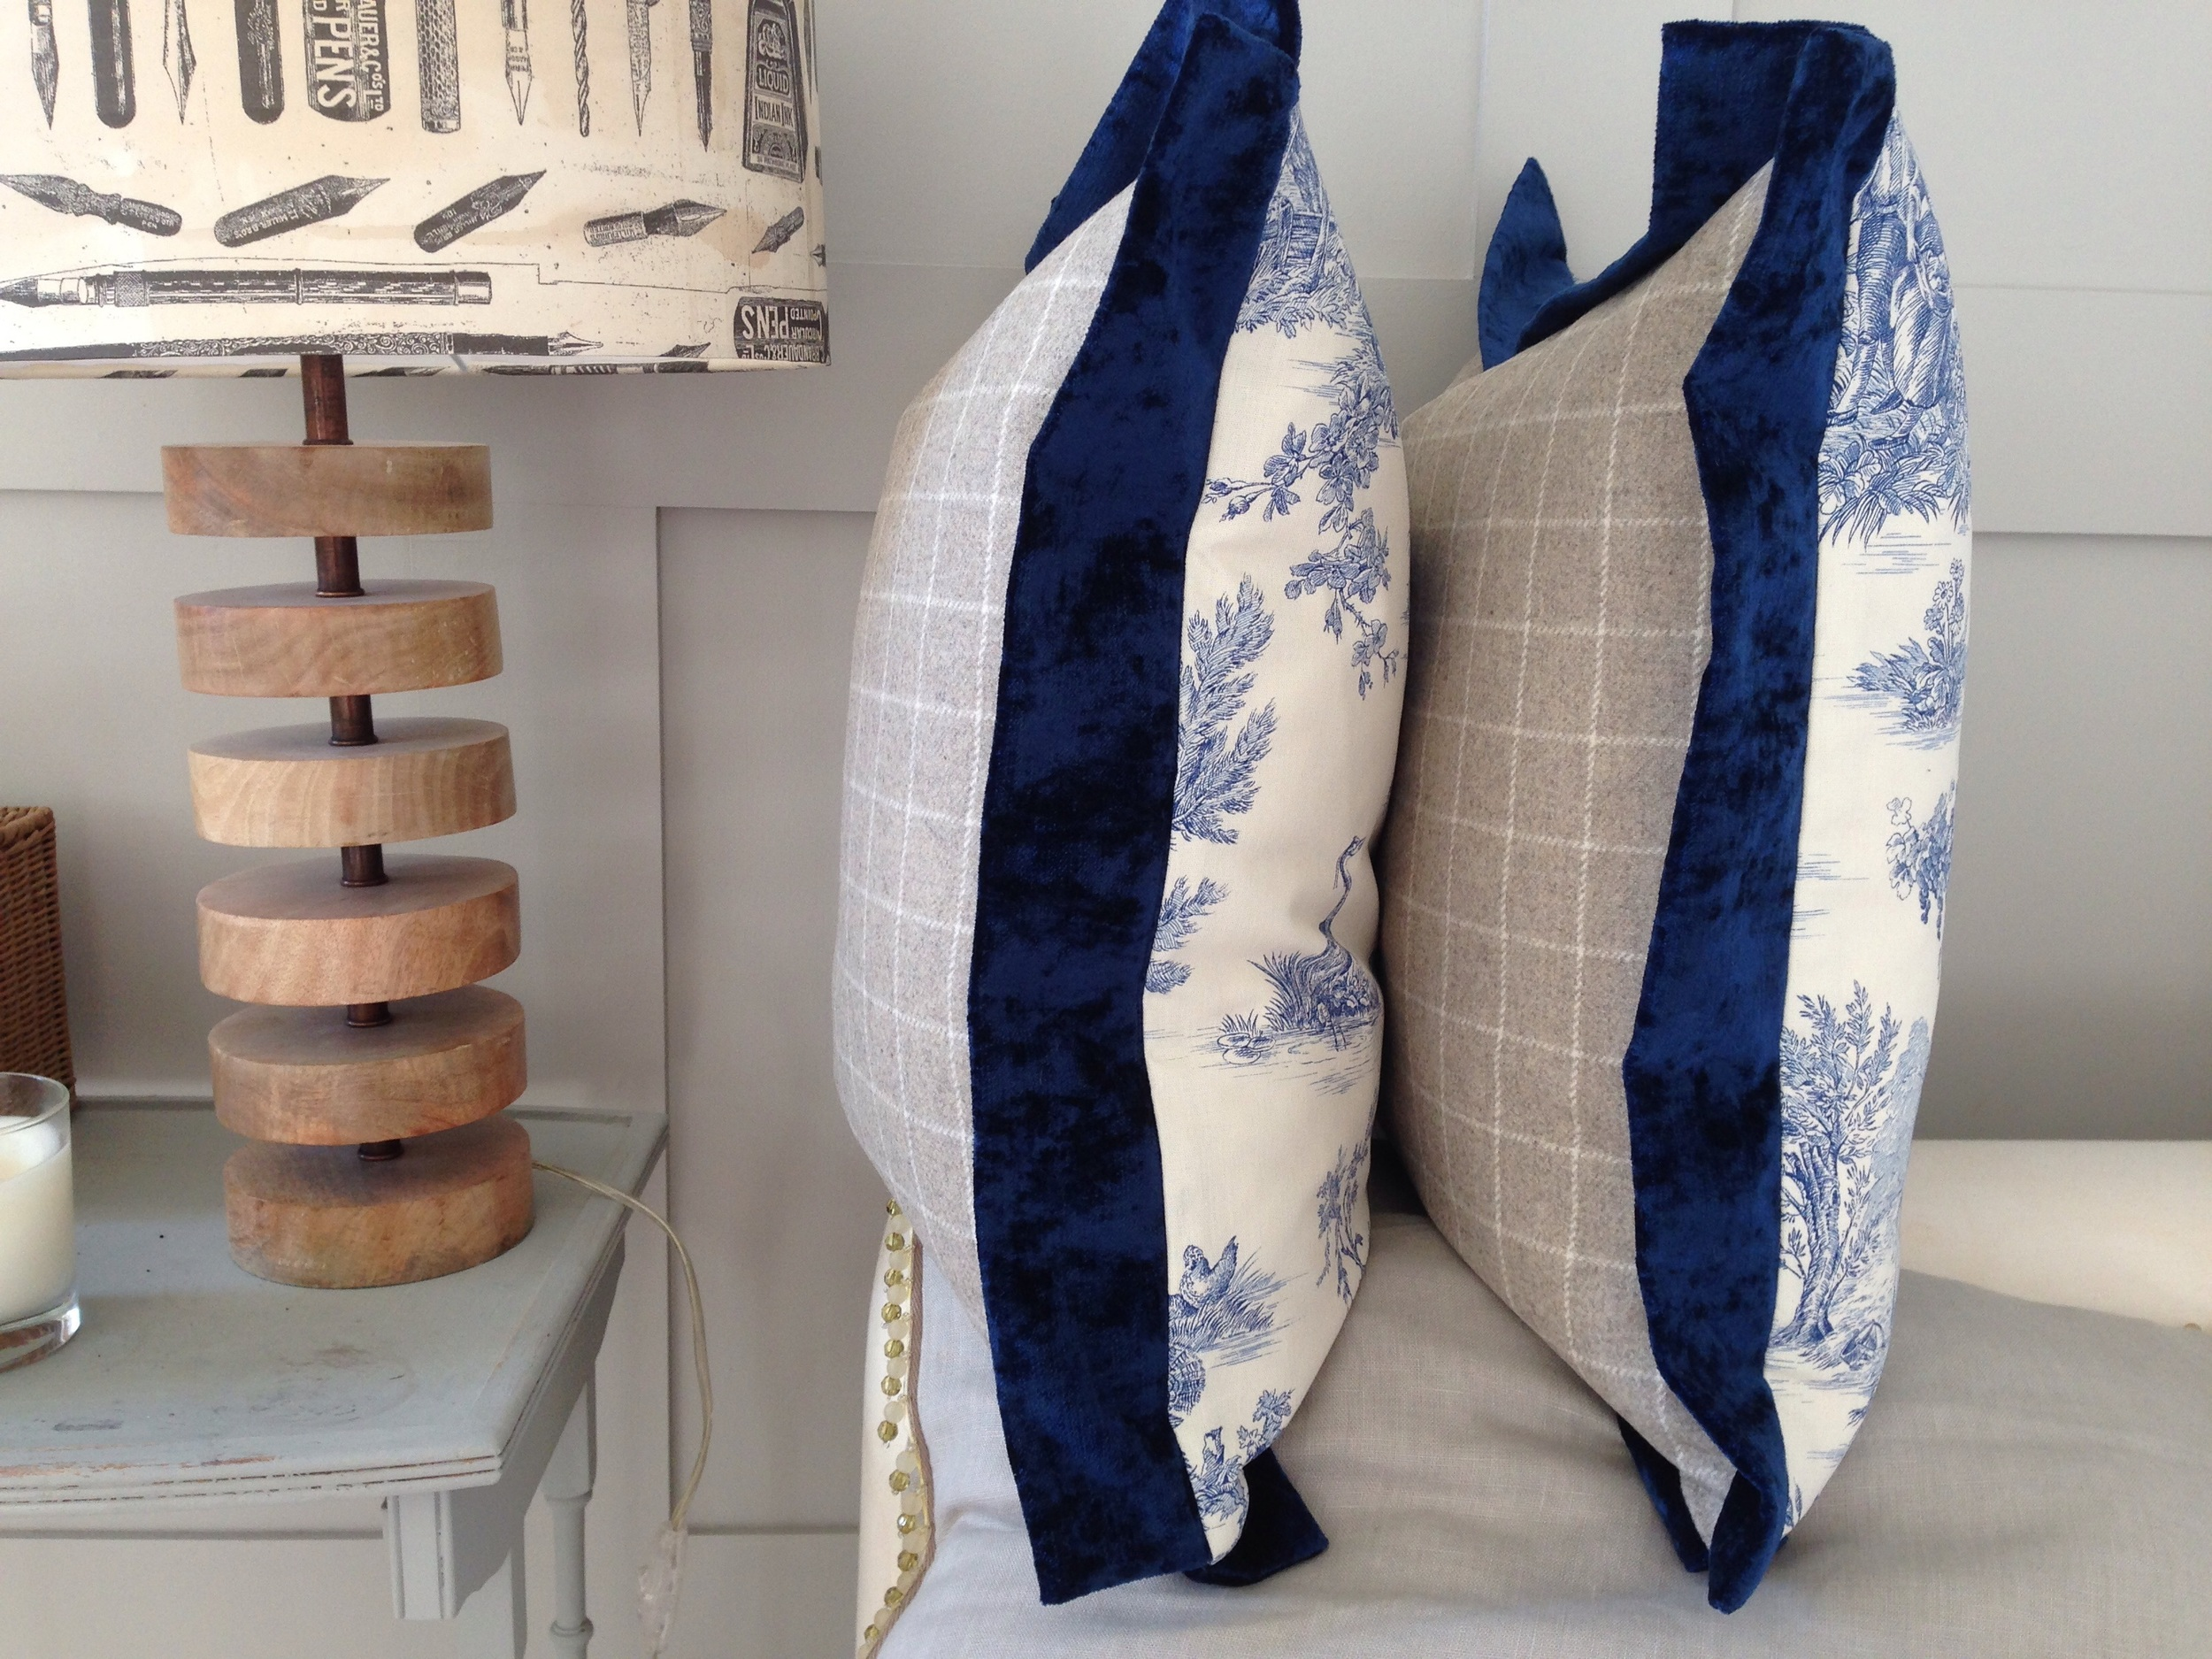 Lovely blue toile teamed with a Casamance check wool and a dark blue velvet